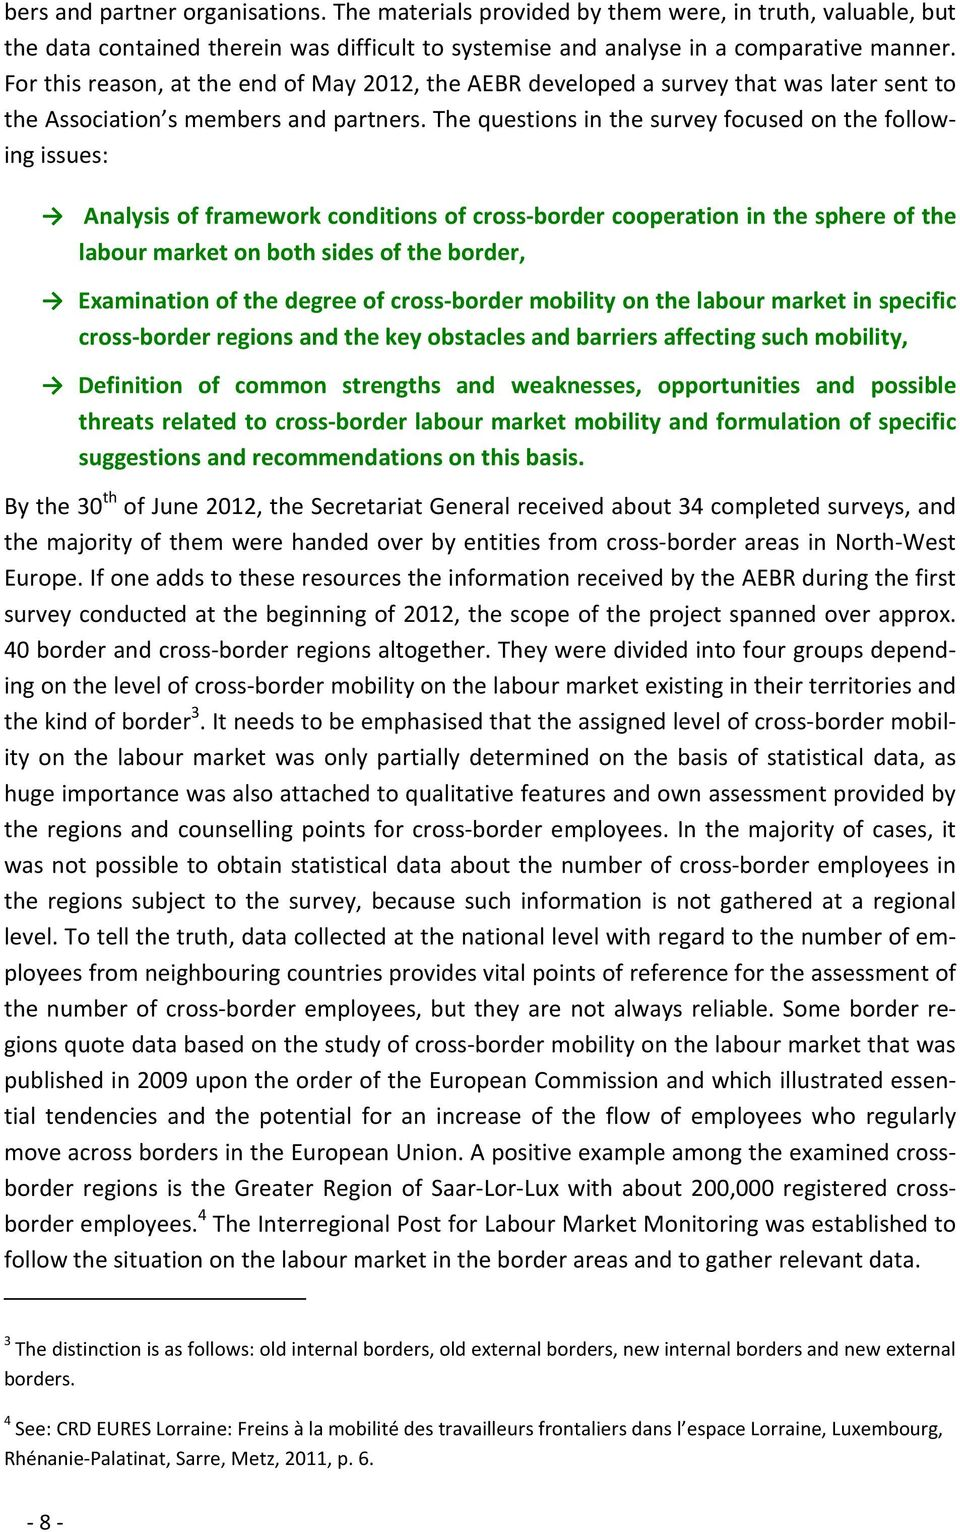 The questions in the survey focused on the following issues: Analysis of framework conditions of cross-border cooperation in the sphere of the labour market on both sides of the border, Examination